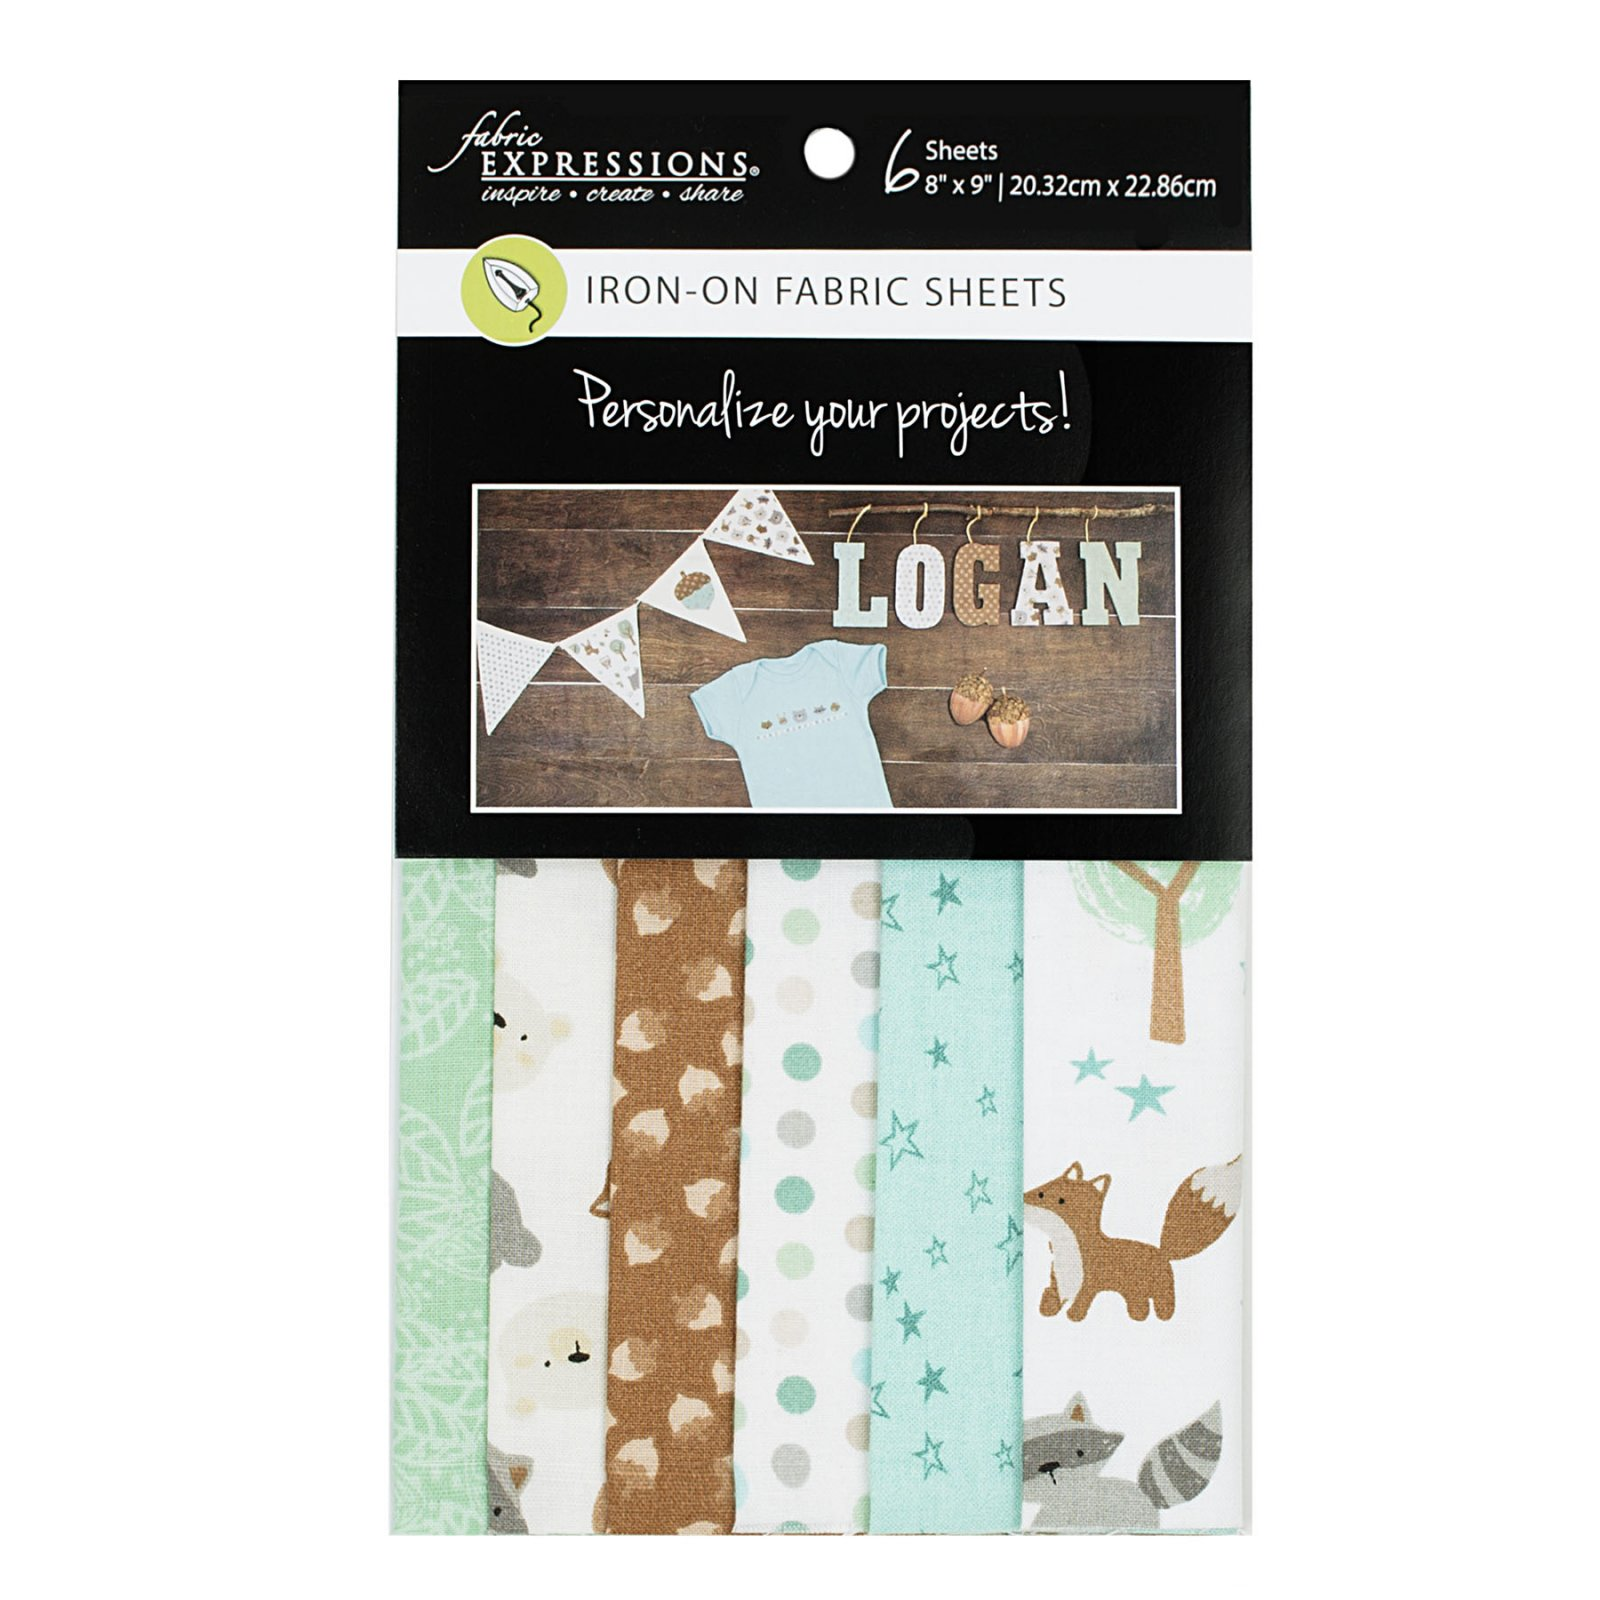 Fabric Expressions<br>6pc Iron-on Fabric Sheets - 8 x 9<br>Woodland Night<br>FE-FS-GRP7